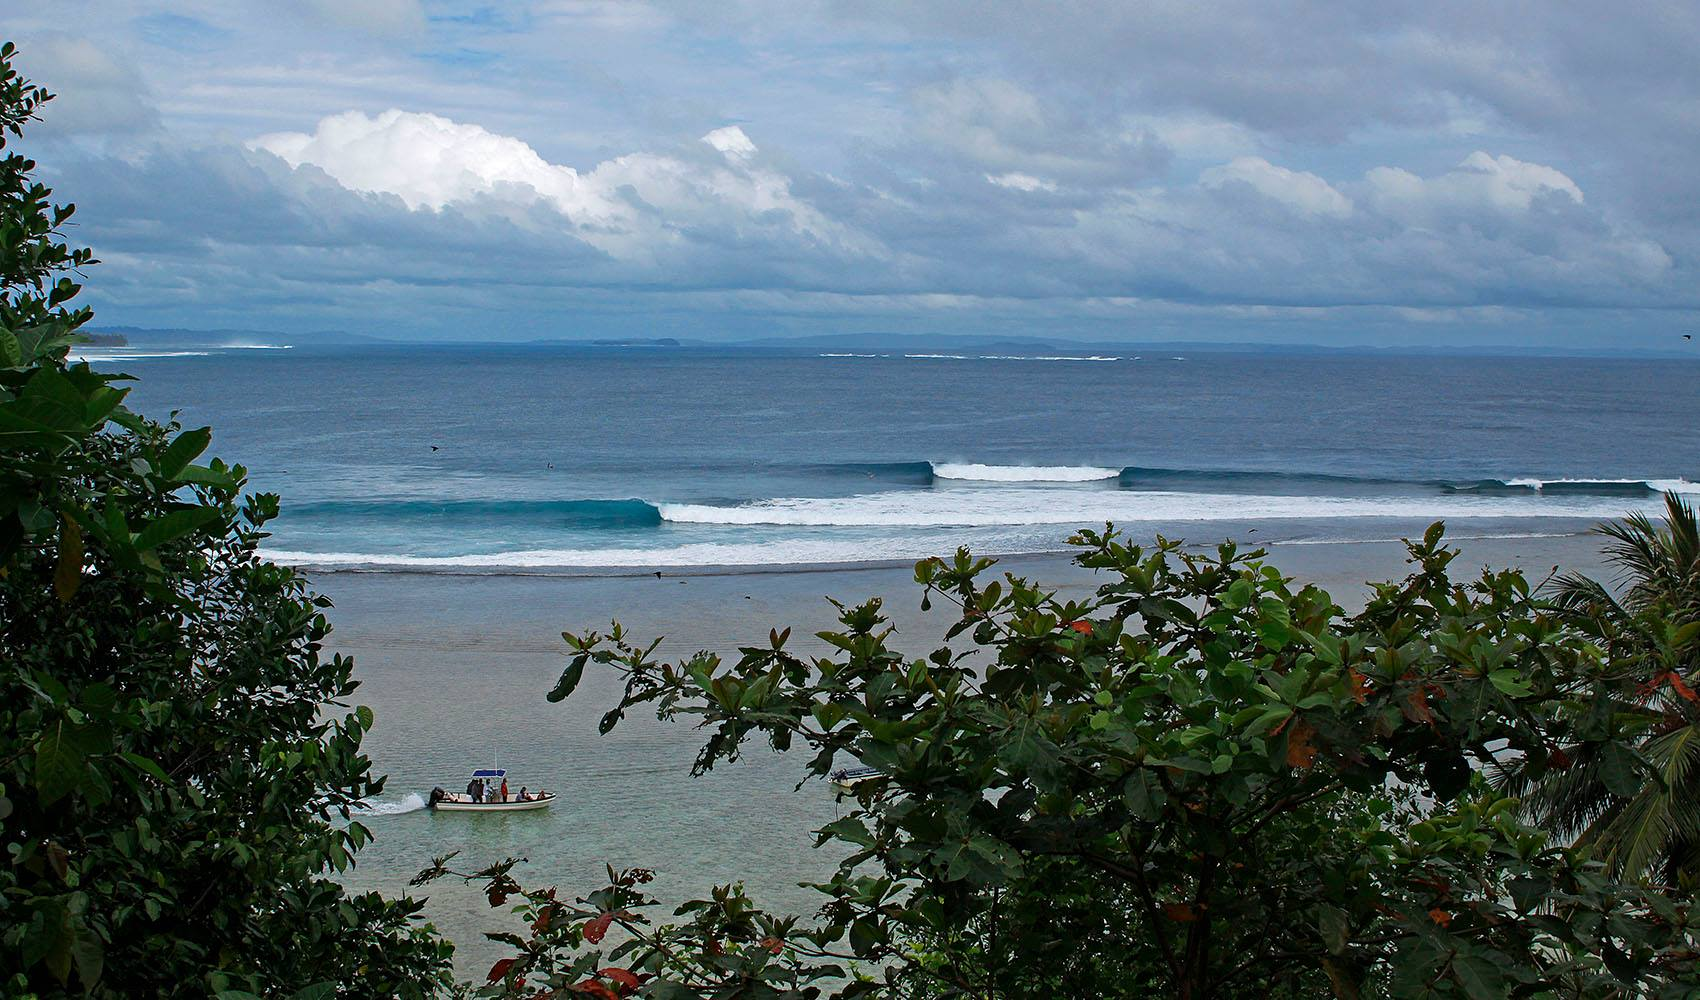 Telo_Island_Lodge_Surf_Indo_Birds_Eye_Perfection.jpg